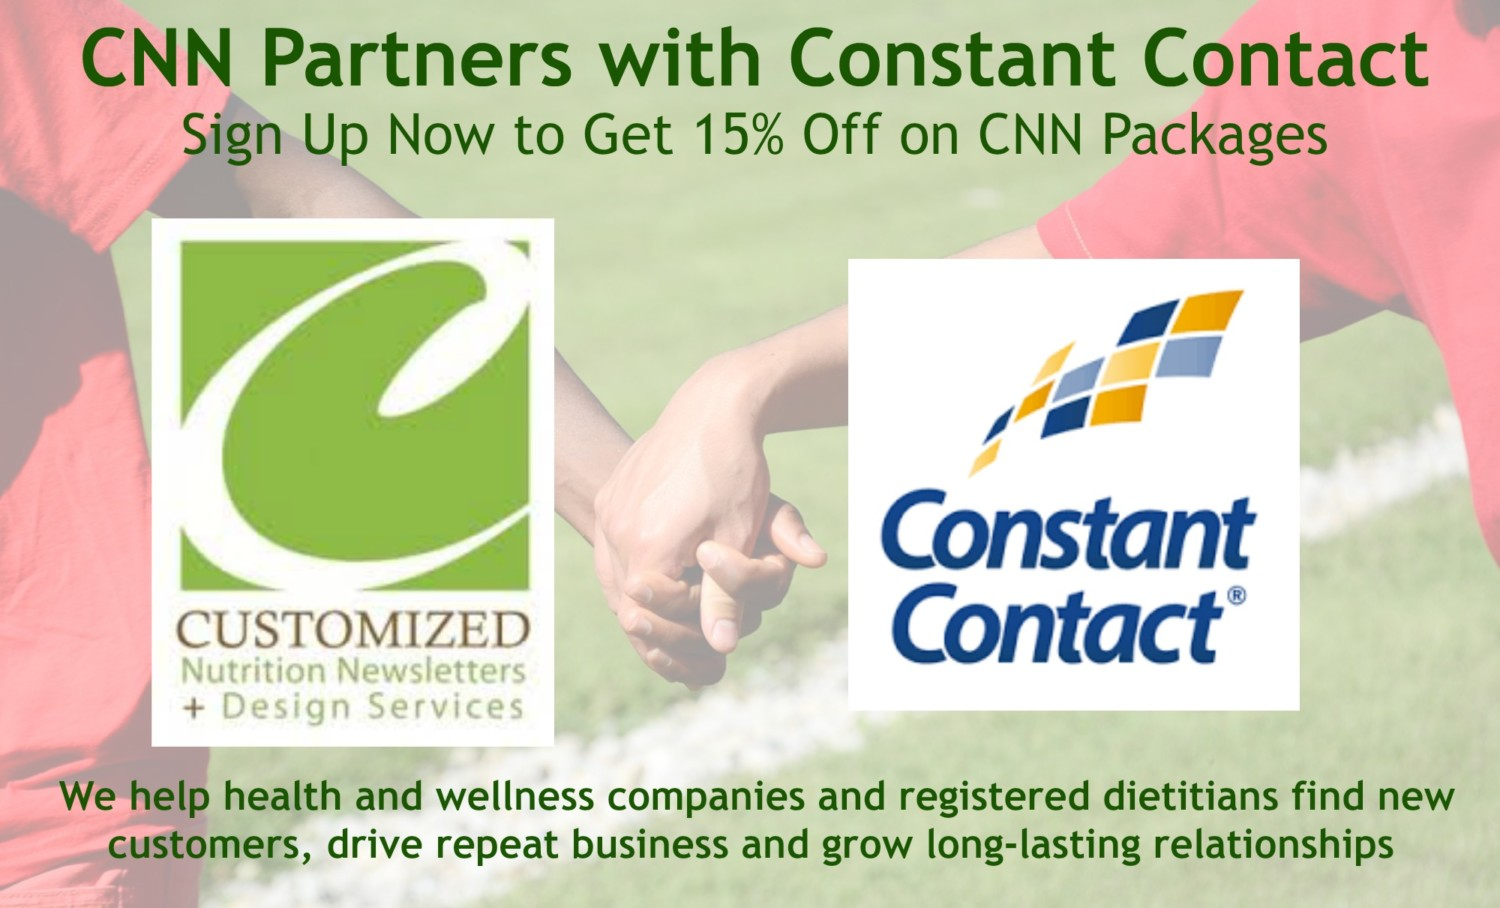 CNN partners Constant Contact - create nutrition newsletters